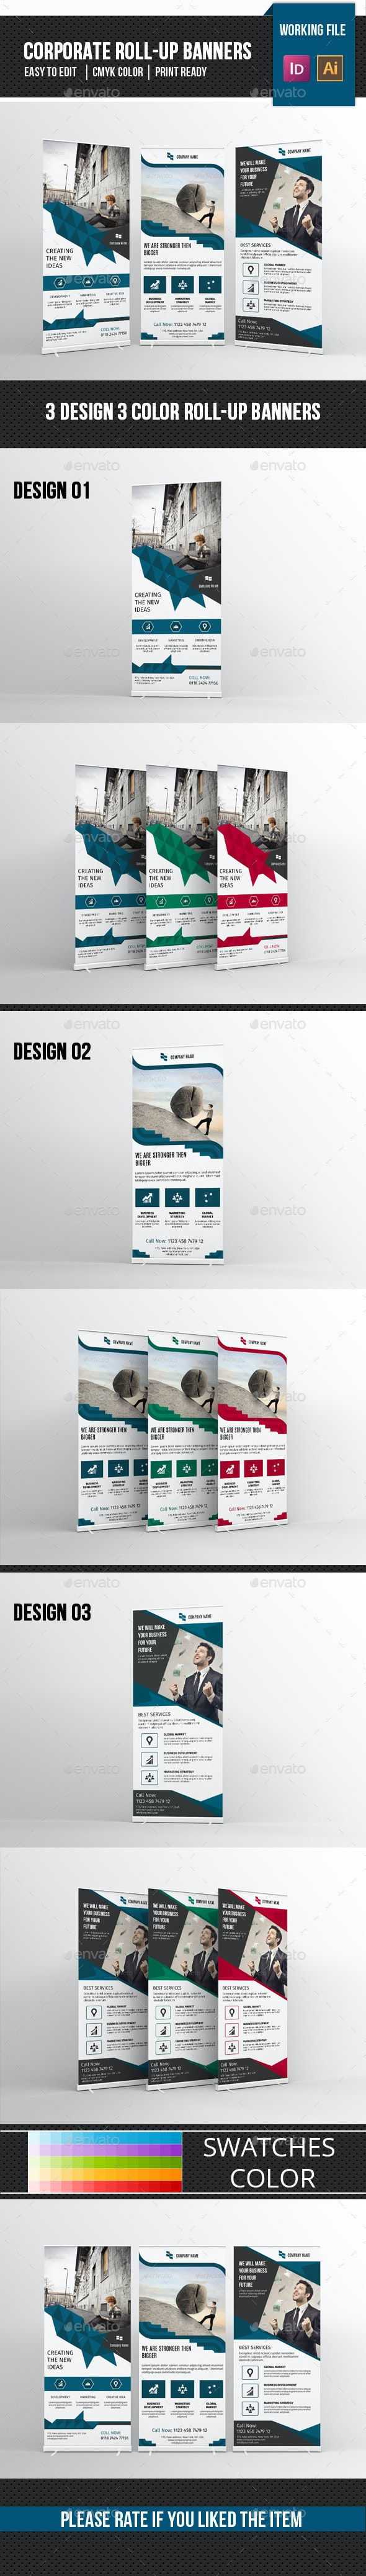 Corporate Roll-up Template-V09 - Signage Print Templates